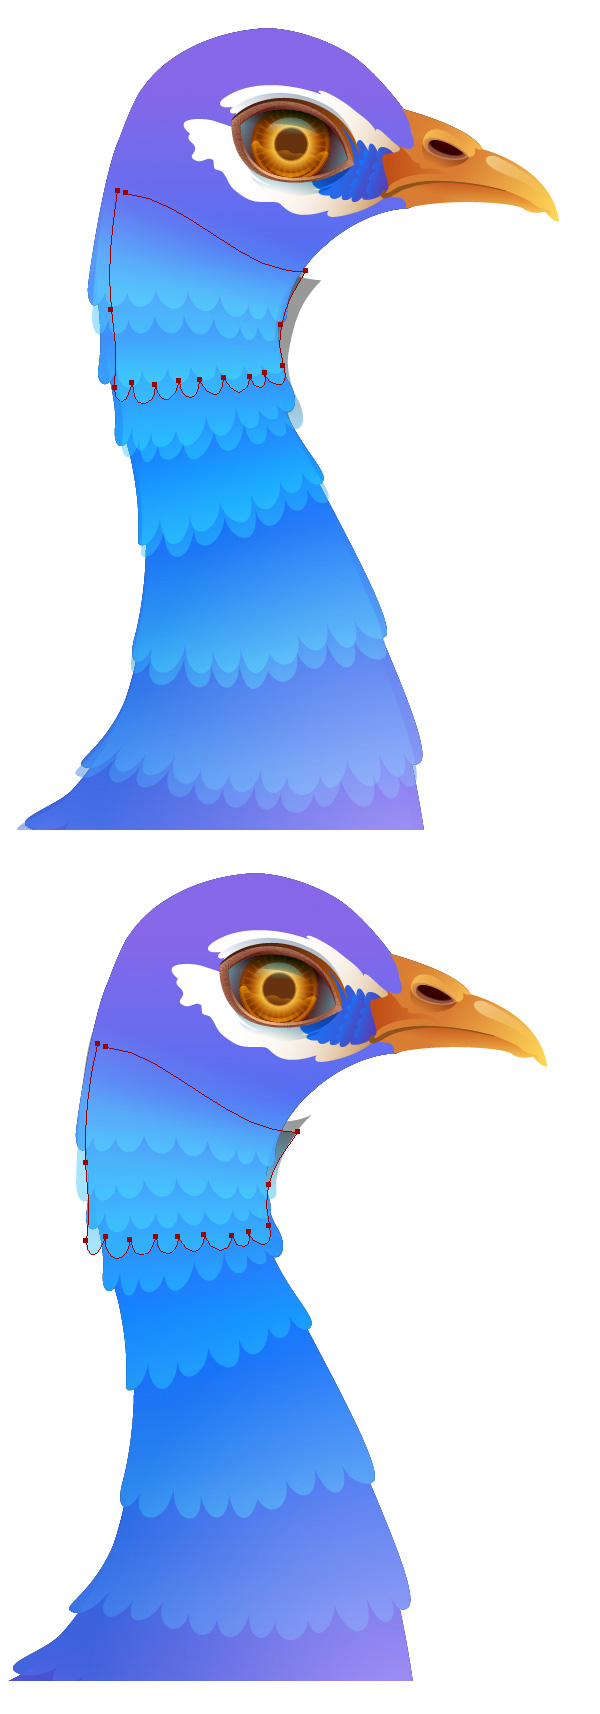 600x1714 Create A Vibrant Peacock In Adobe Illustrator